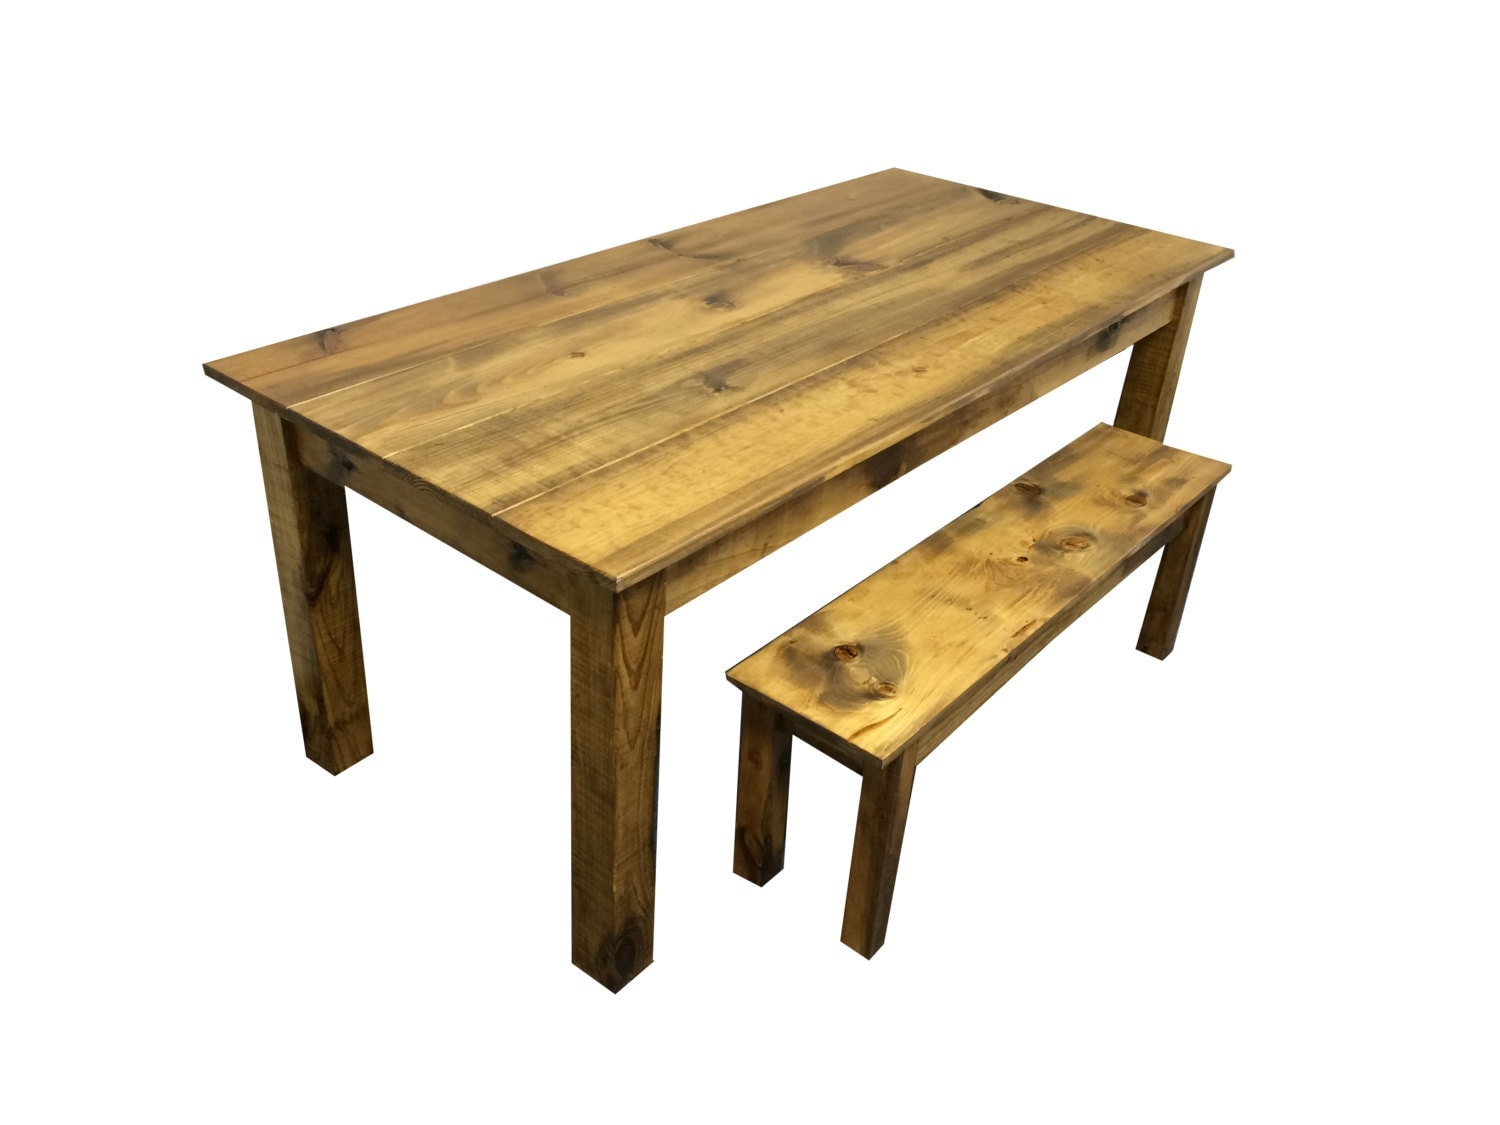 rustic barn wood farmhouse table harvest table reclaimed